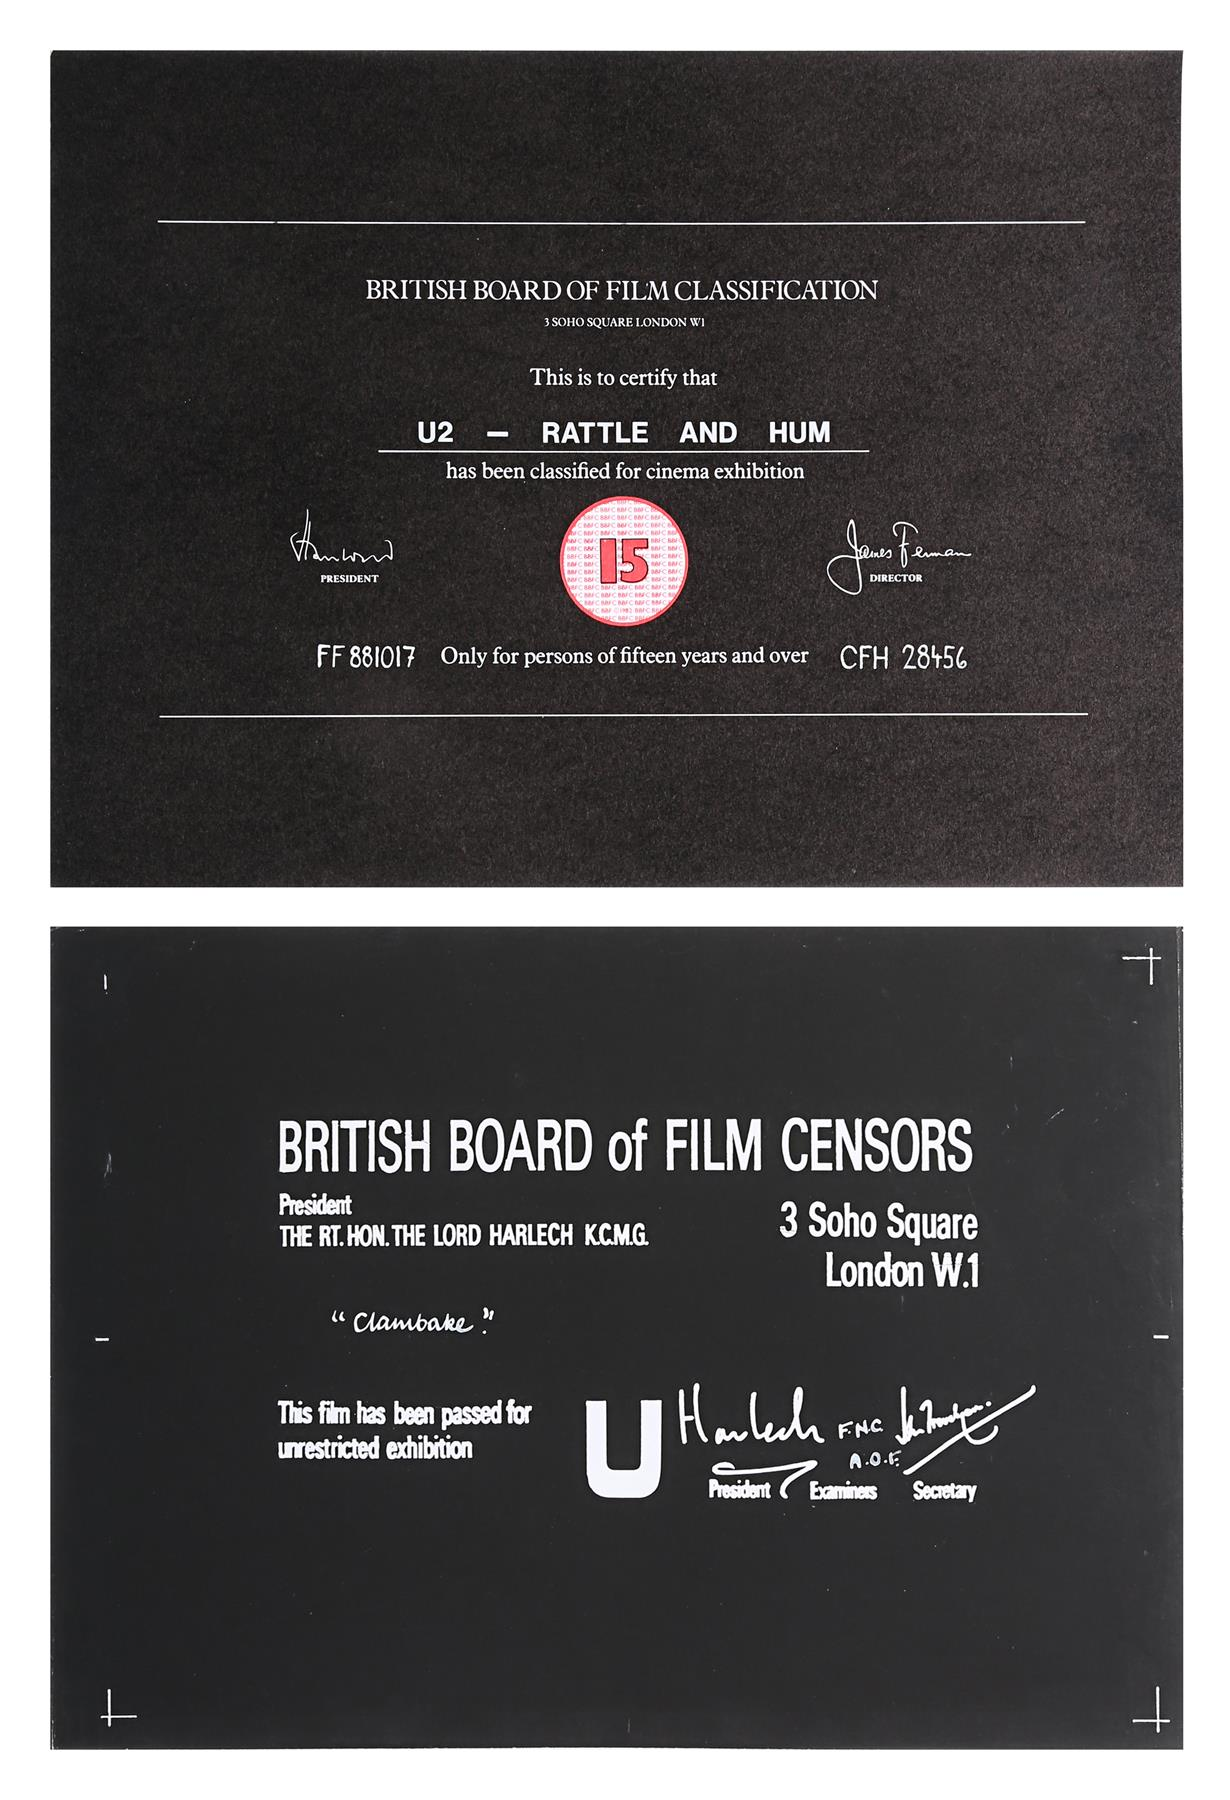 VARIOUS PRODUCTIONS - BBFC Certificates Music Related - Image 4 of 4